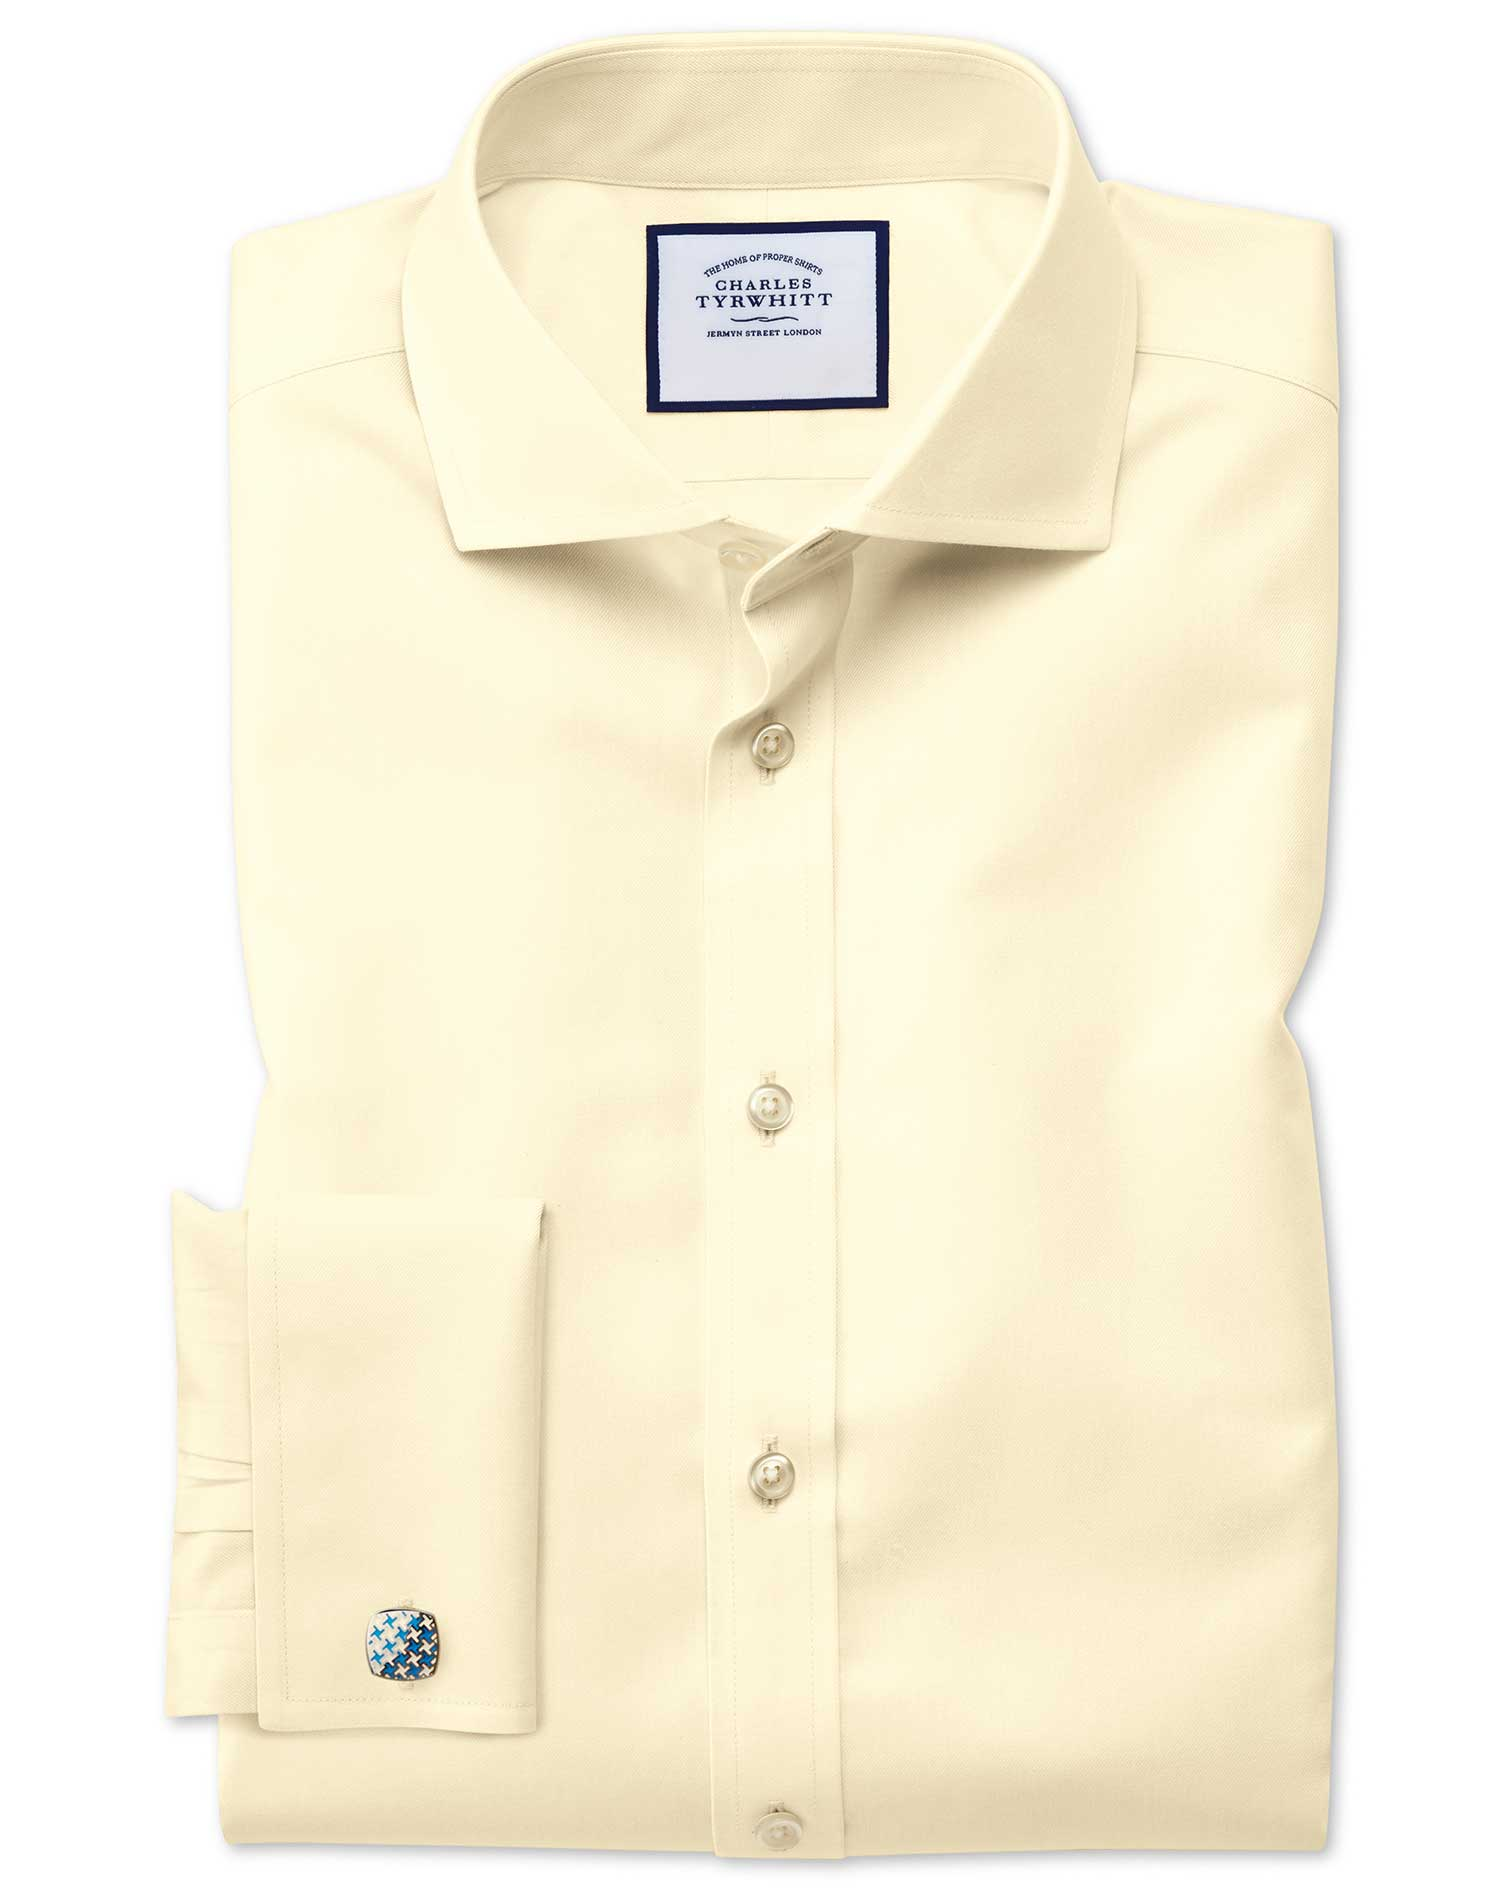 Slim Fit Cutaway Collar Non-Iron Twill Yellow Cotton Formal Shirt Double Cuff Size 14.5/33 by Charle